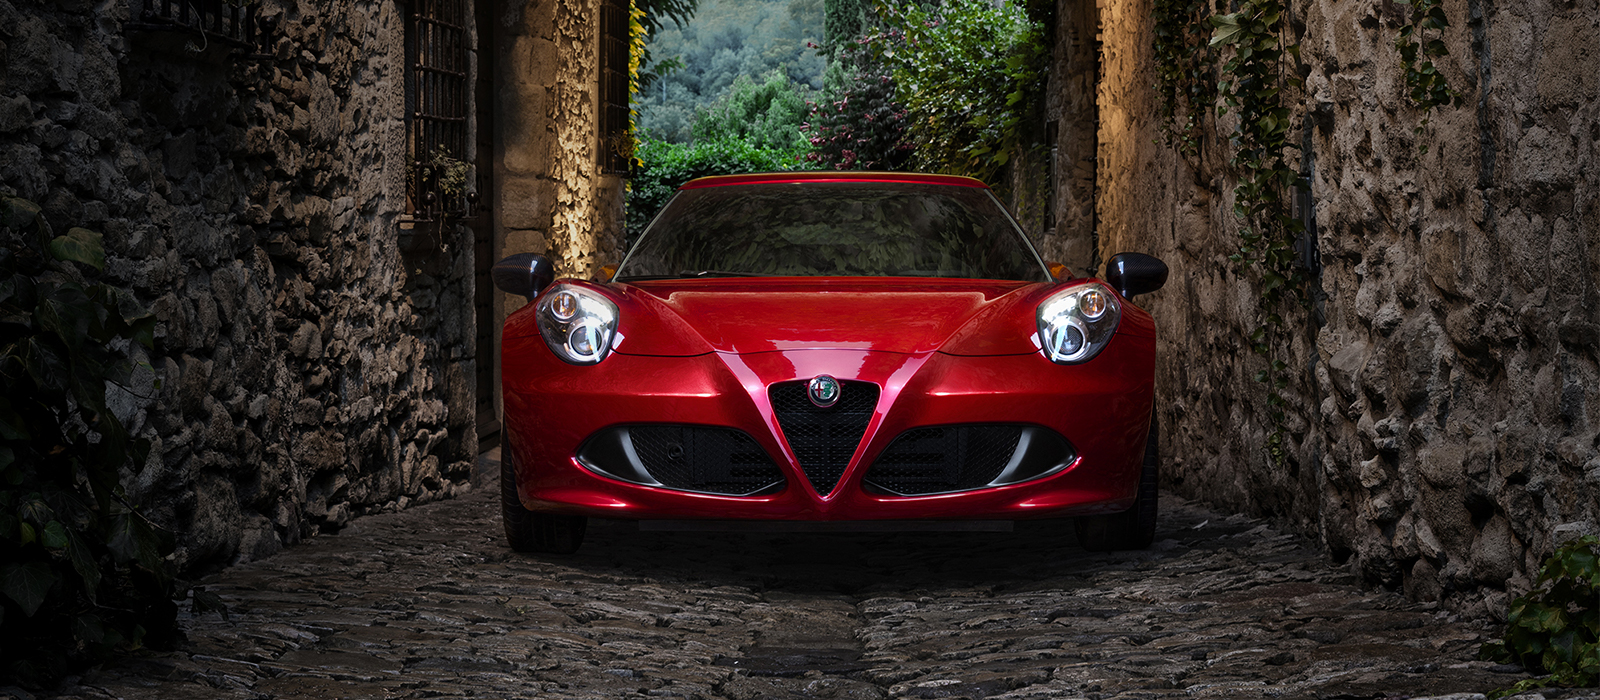 Alfa Romeo 4C - car luxury